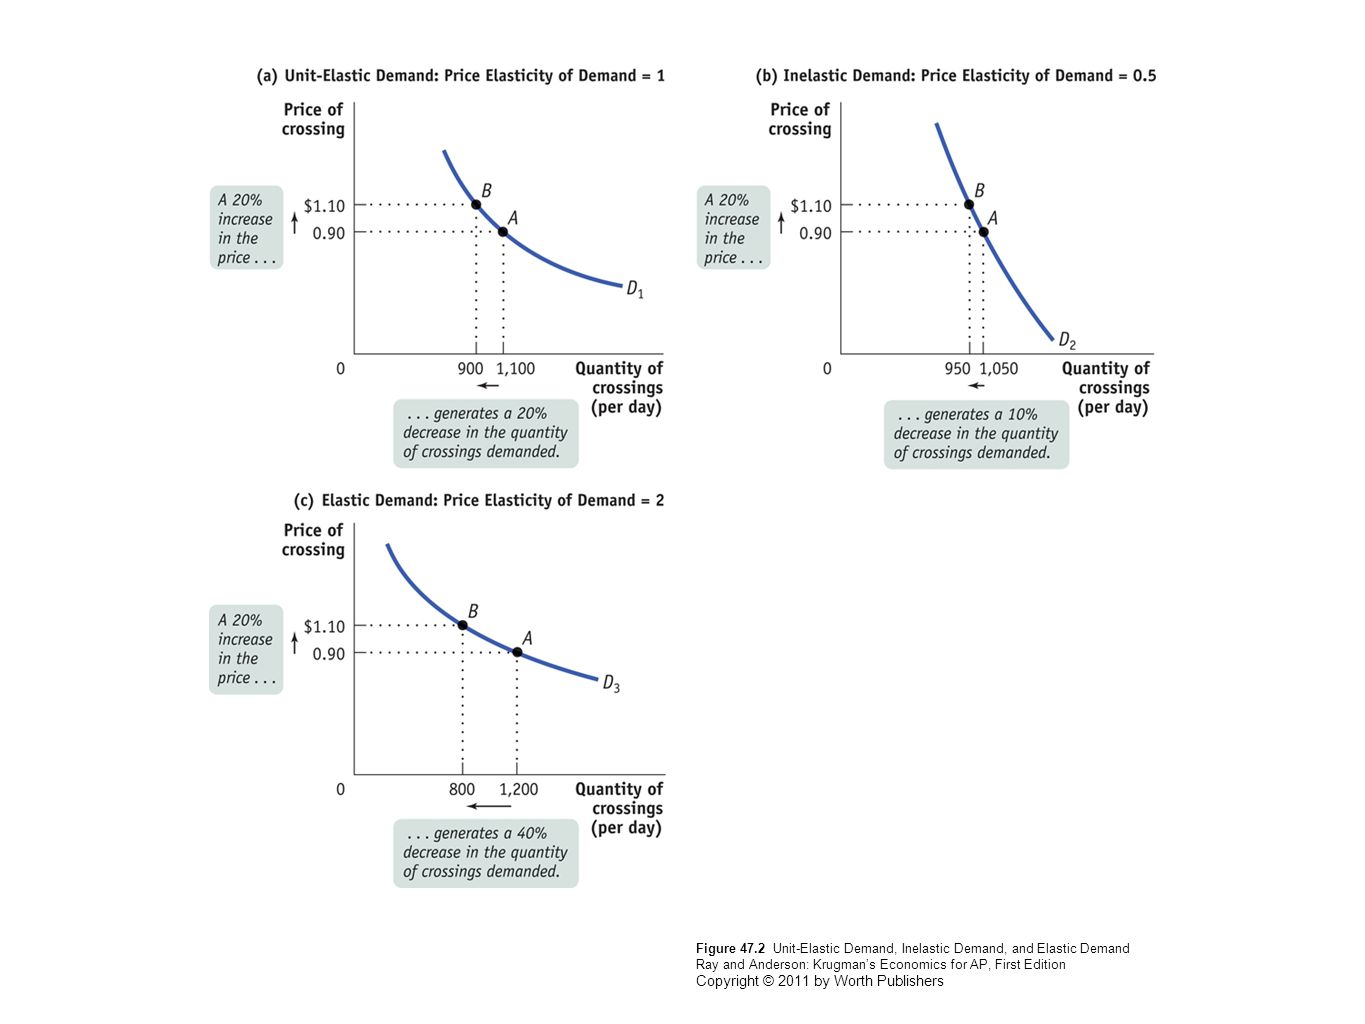 Figure 47.2 Unit-Elastic Demand, Inelastic Demand, and Elastic Demand Ray and Anderson: Krugman's Economics for AP, First Edition Copyright © 2011 by